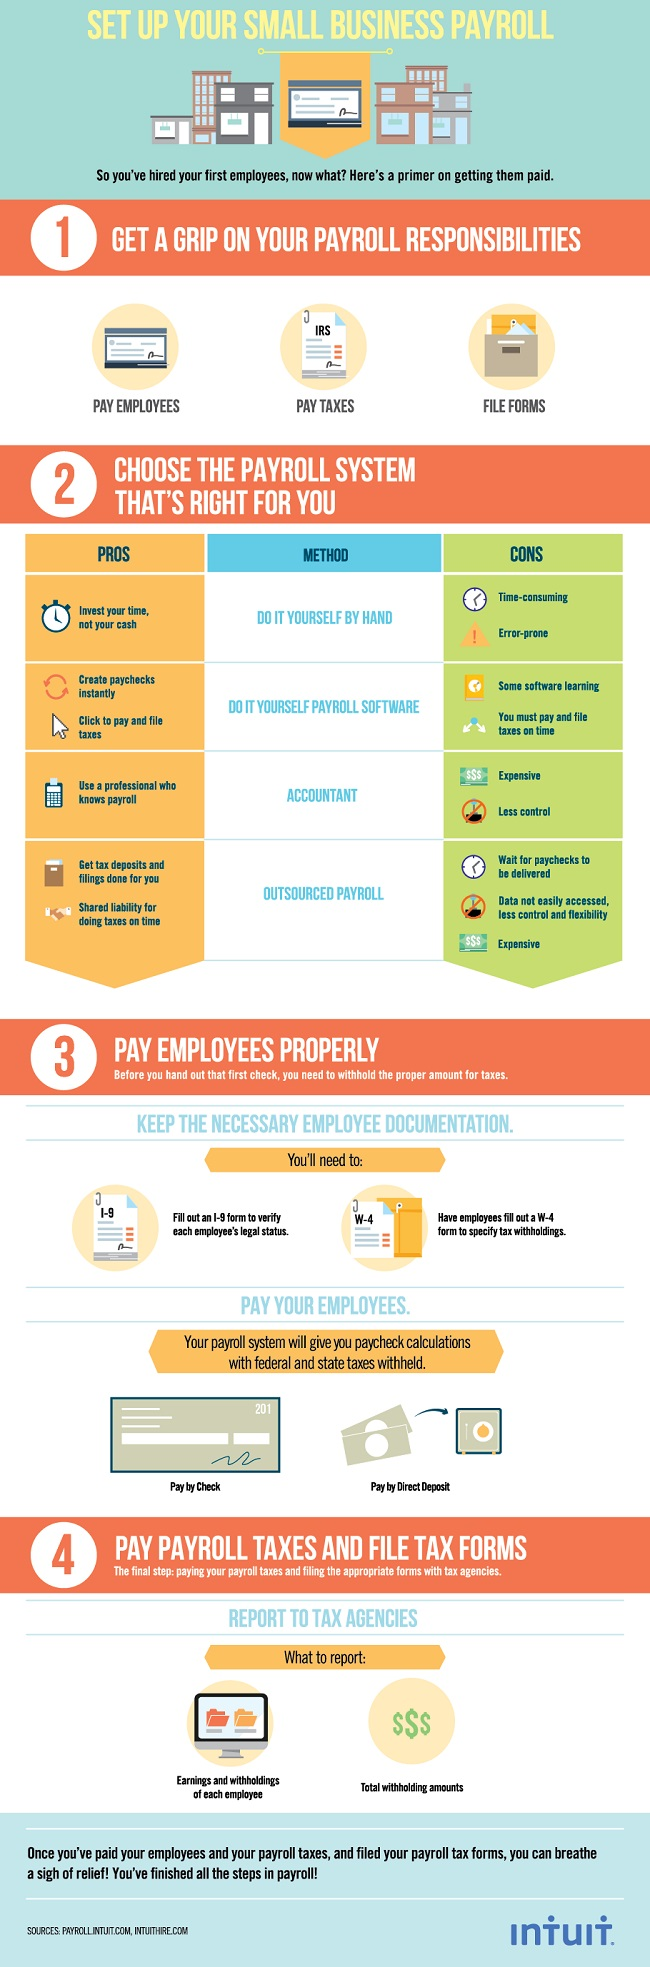 4-steps-to-a-successful-small-business-payroll-process.jpg